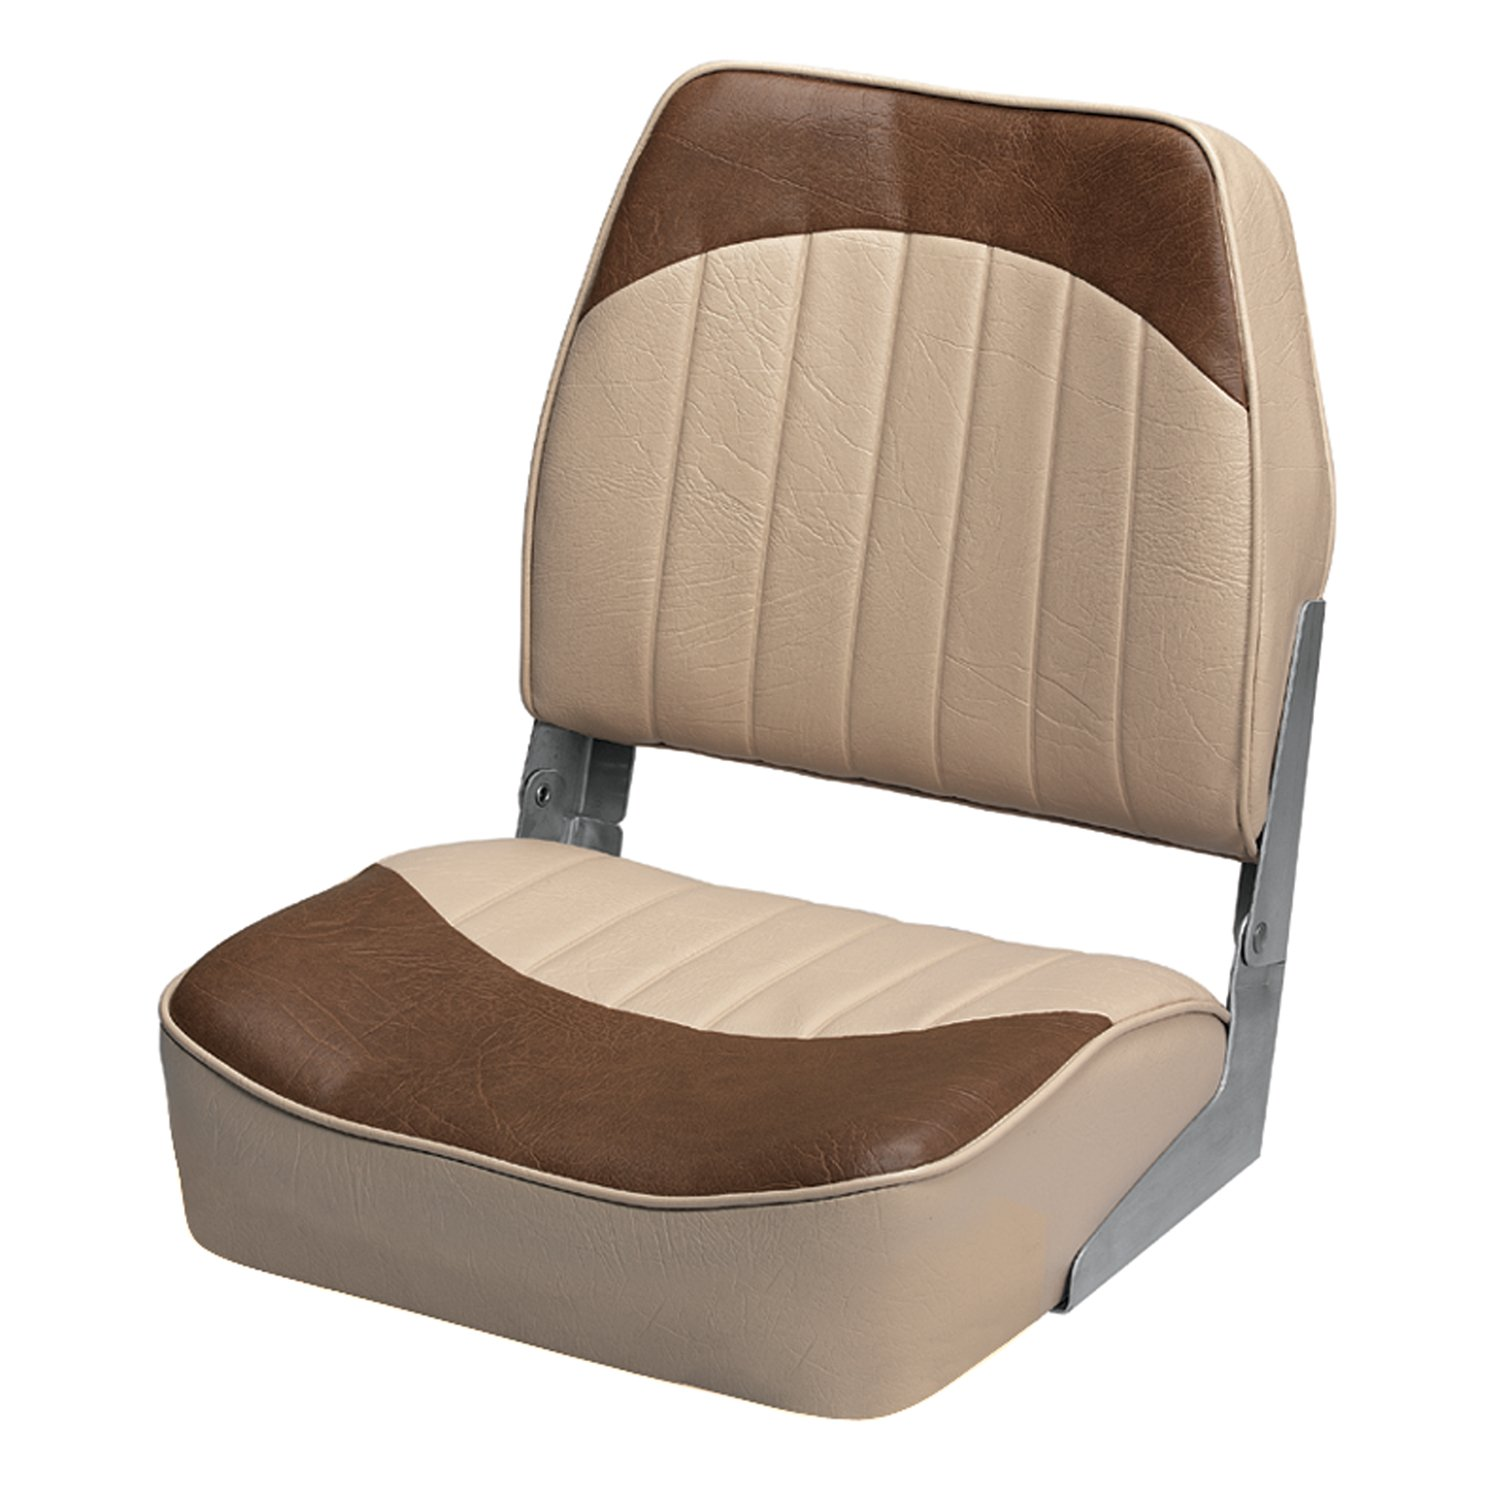 Wise 8WD734PLS-662 Low Back Boat Seat, Sand/Brown by Wise